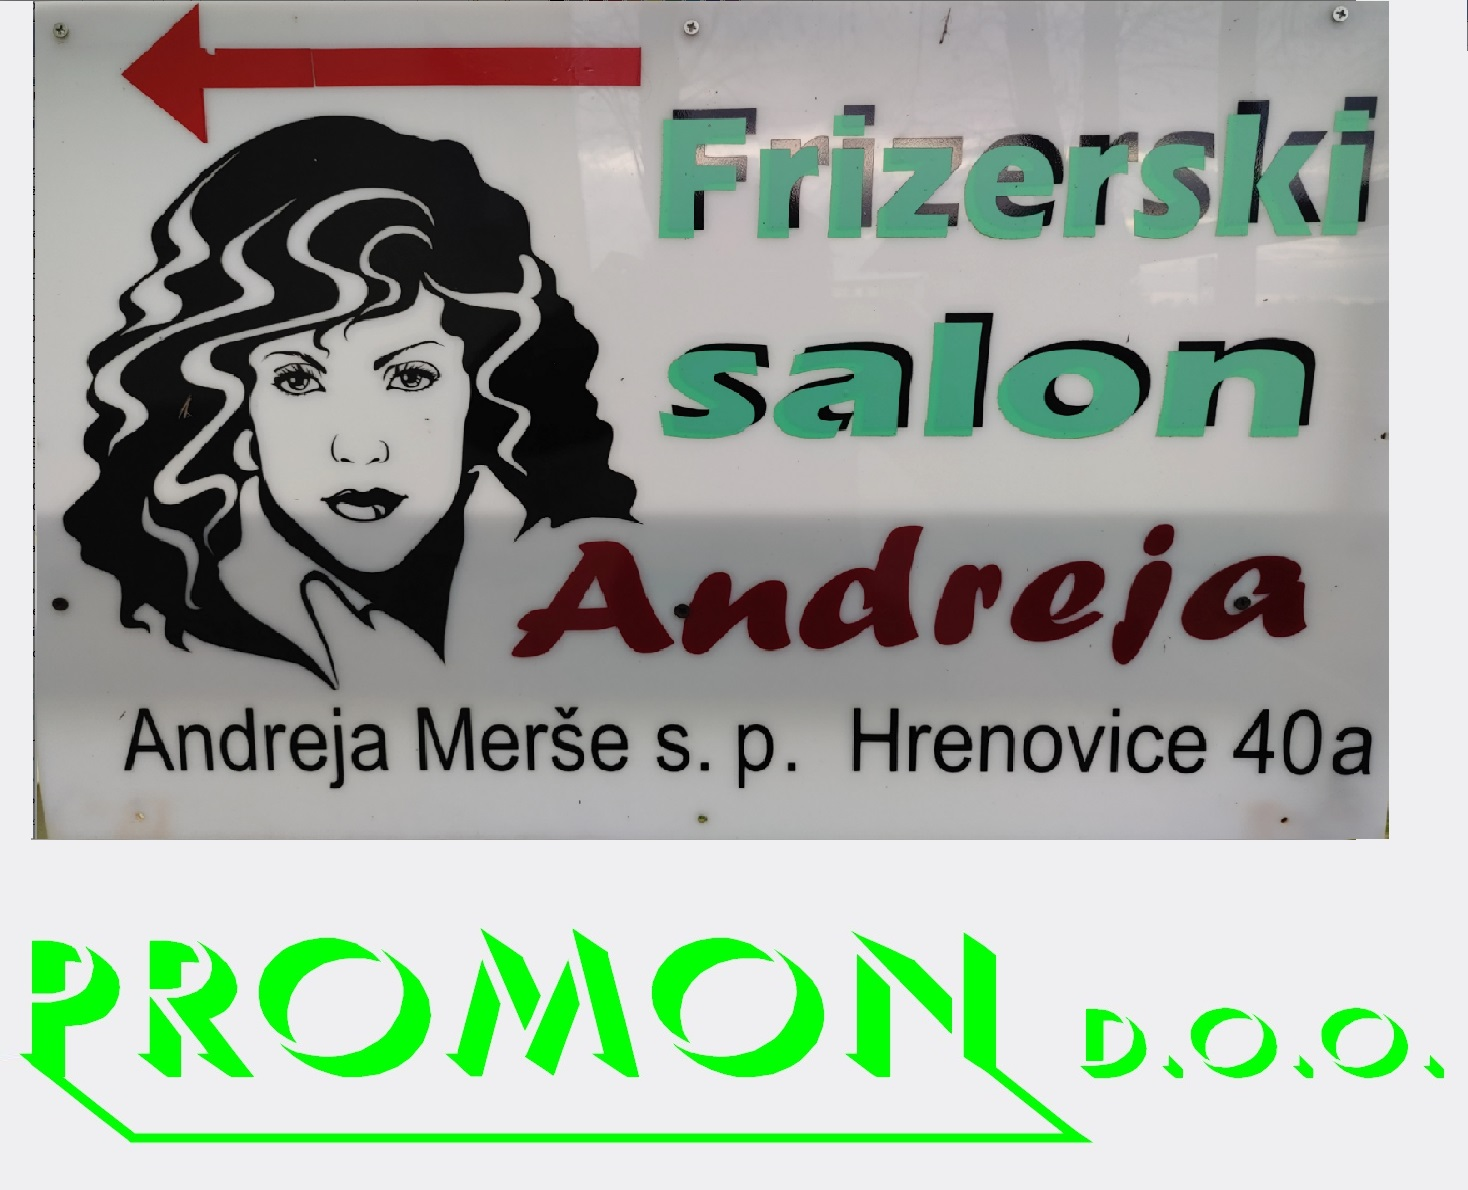 52 andreja in 53 promon